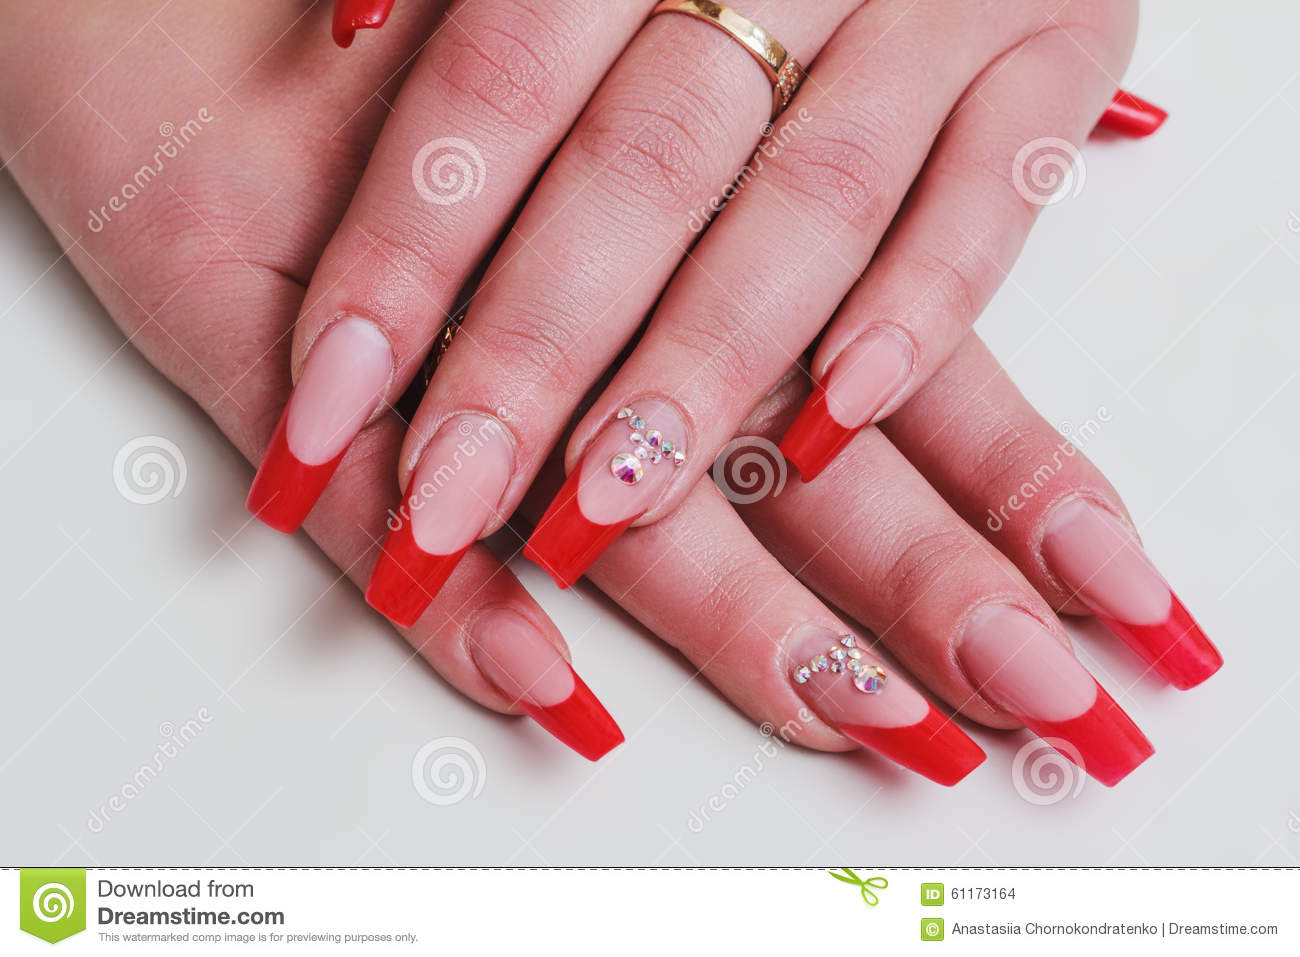 Red French Nail Art With Rhinestones Stock Photo - Image of beauty ...